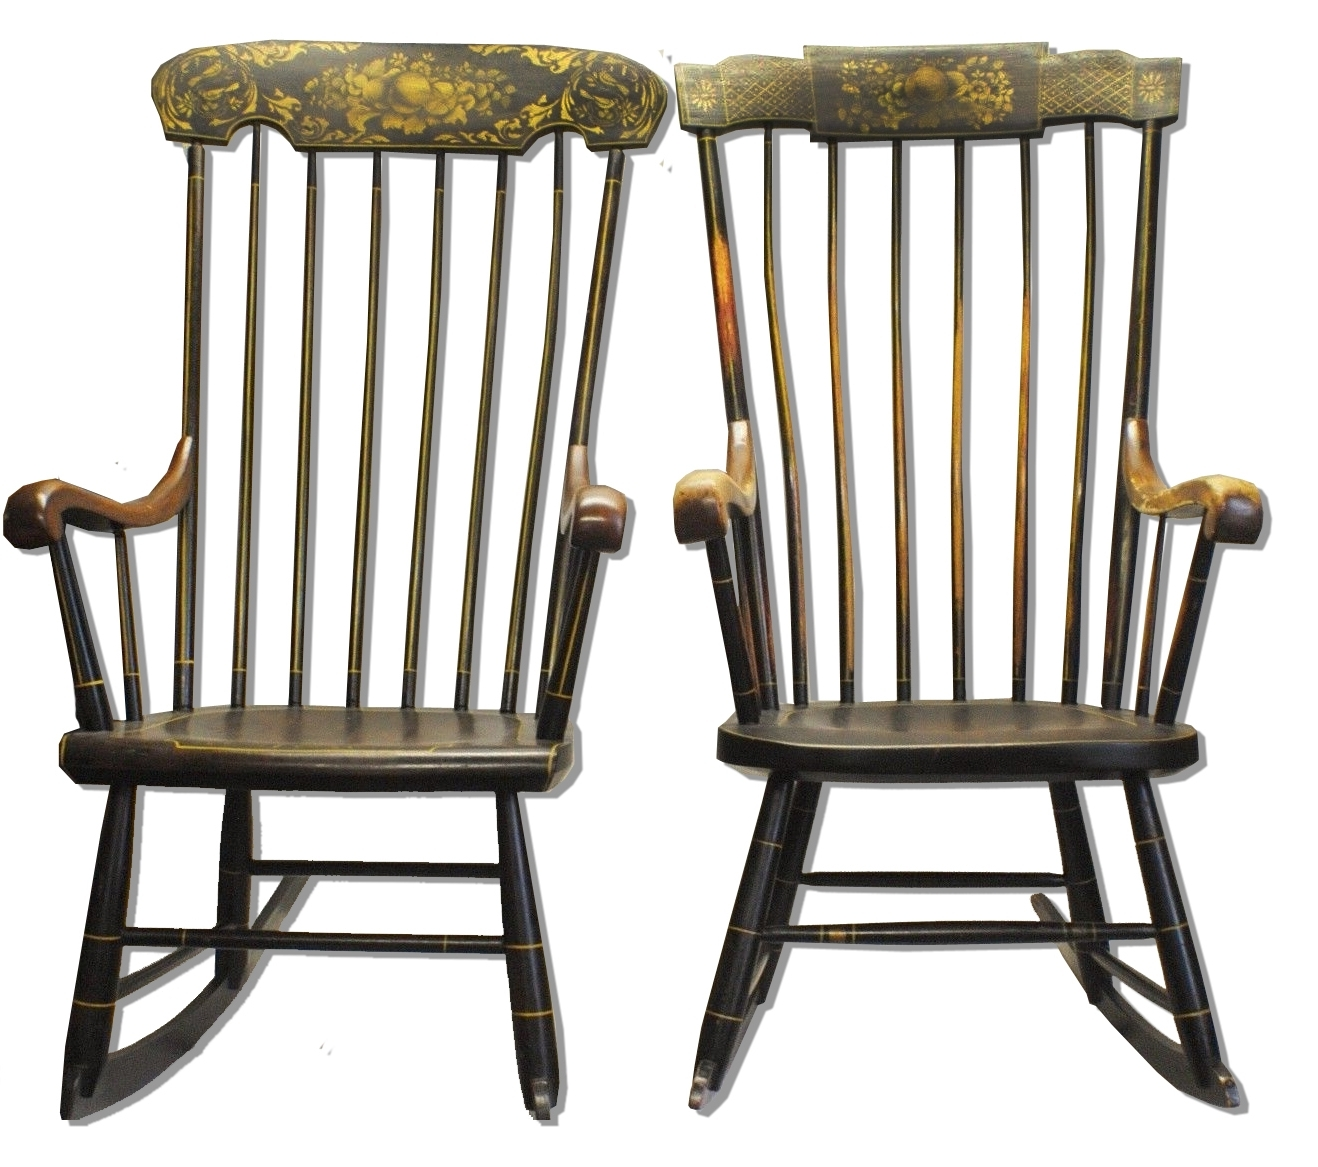 Newest Lincoln's Rocking Chairs Sell For $26k – Antique Trader Regarding Antique Rocking Chairs (View 4 of 15)